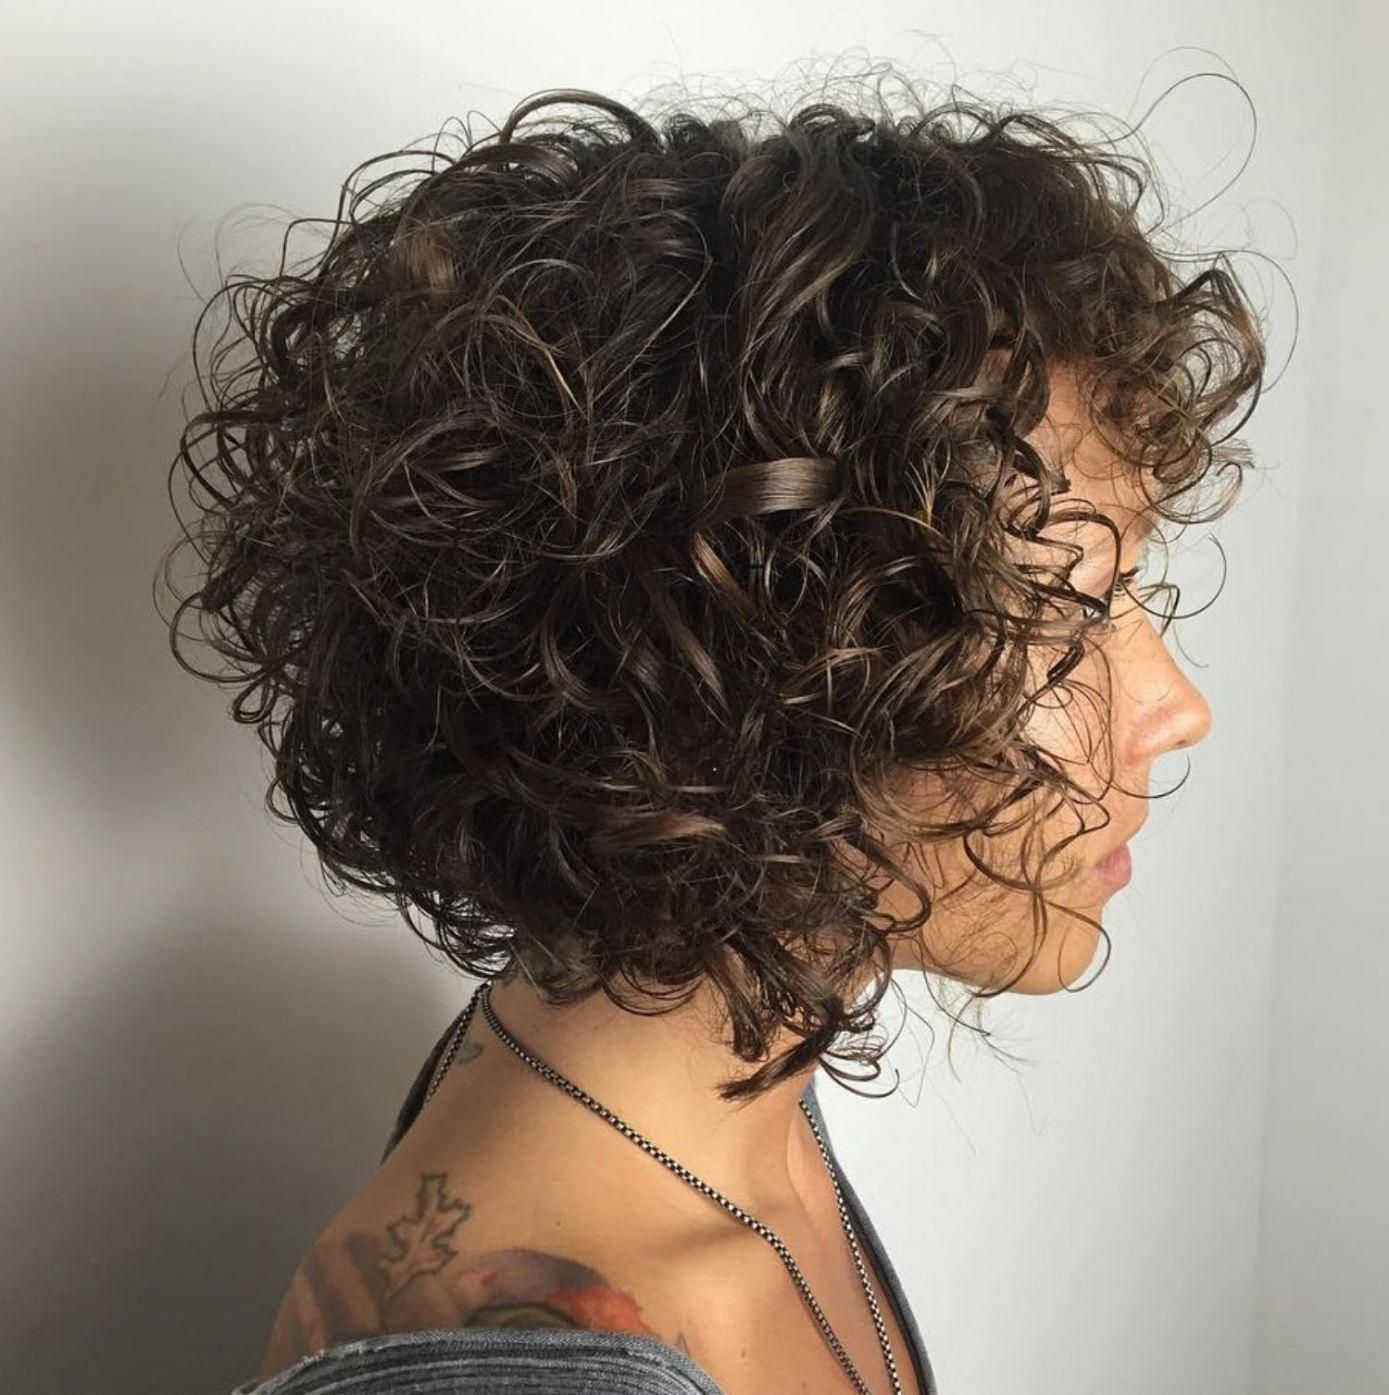 60 Most Delightful Short Wavy Hairstyles Curly Hair Styles Naturally Short Layered Curly Hair Short Wavy Hair